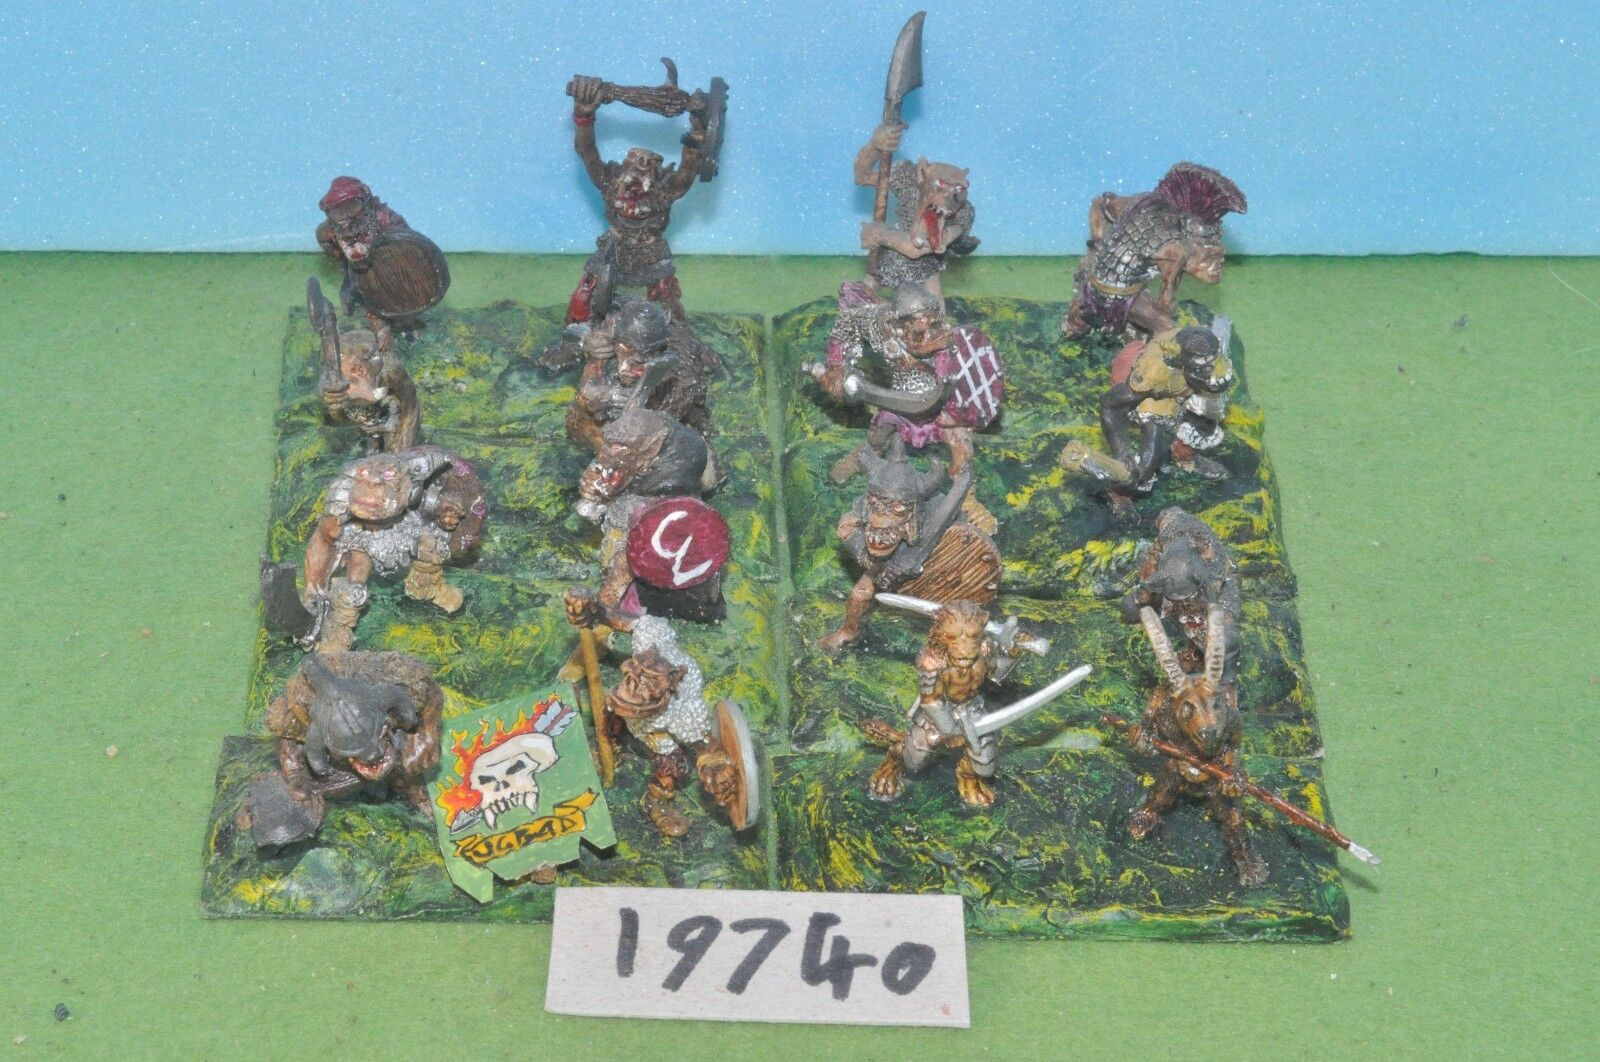 Item fantasy   warhammer - destruction orc boys 16 metal sigmar - (19740)